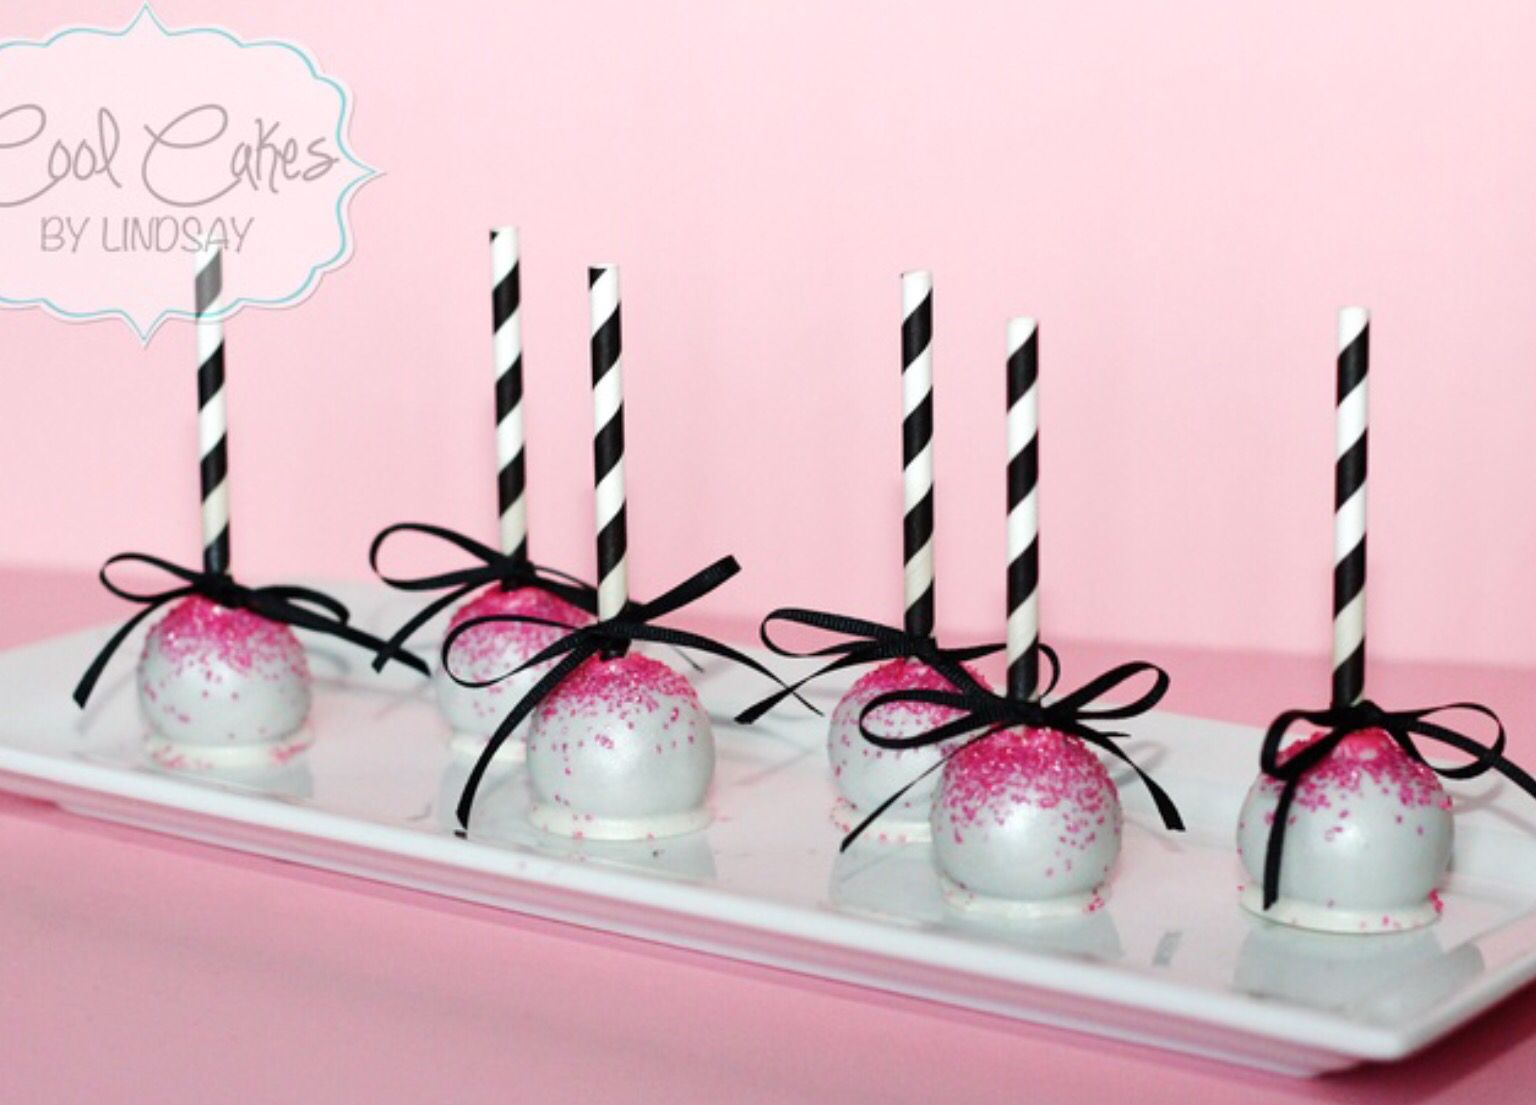 Pin by Renee Harless on Gender reveal | Pink cake pops, Pure romance party food, White cake pops